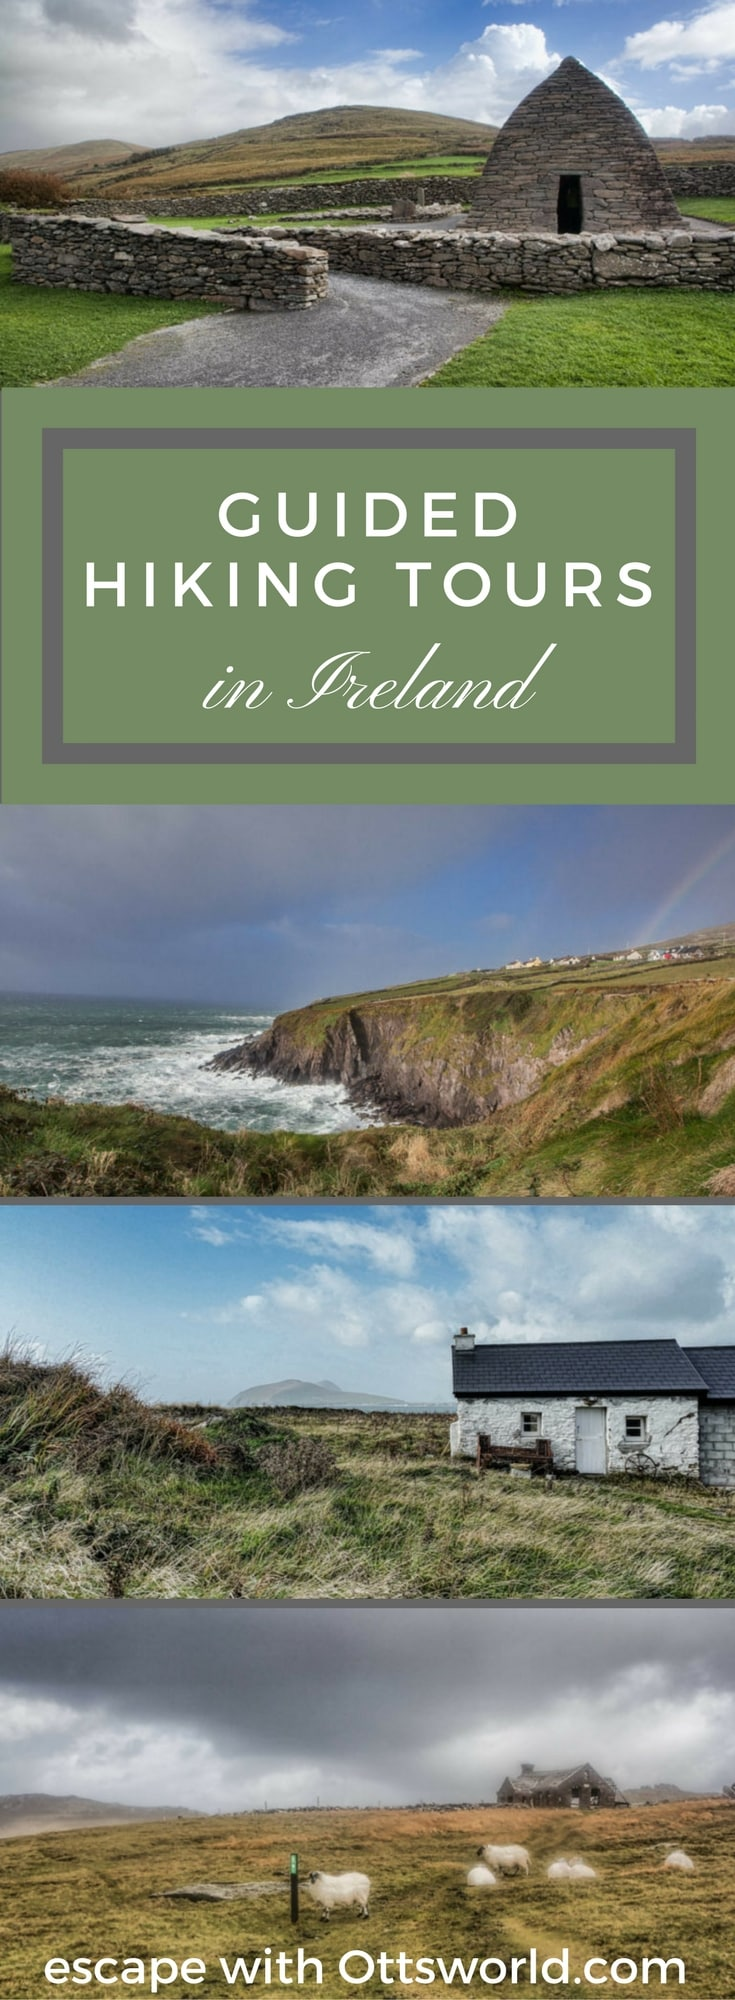 With a new range of guided and self guided hiking tours, I'm ready to head back to Ireland in 2018 to experience more hiking in Ireland on the West Coast!